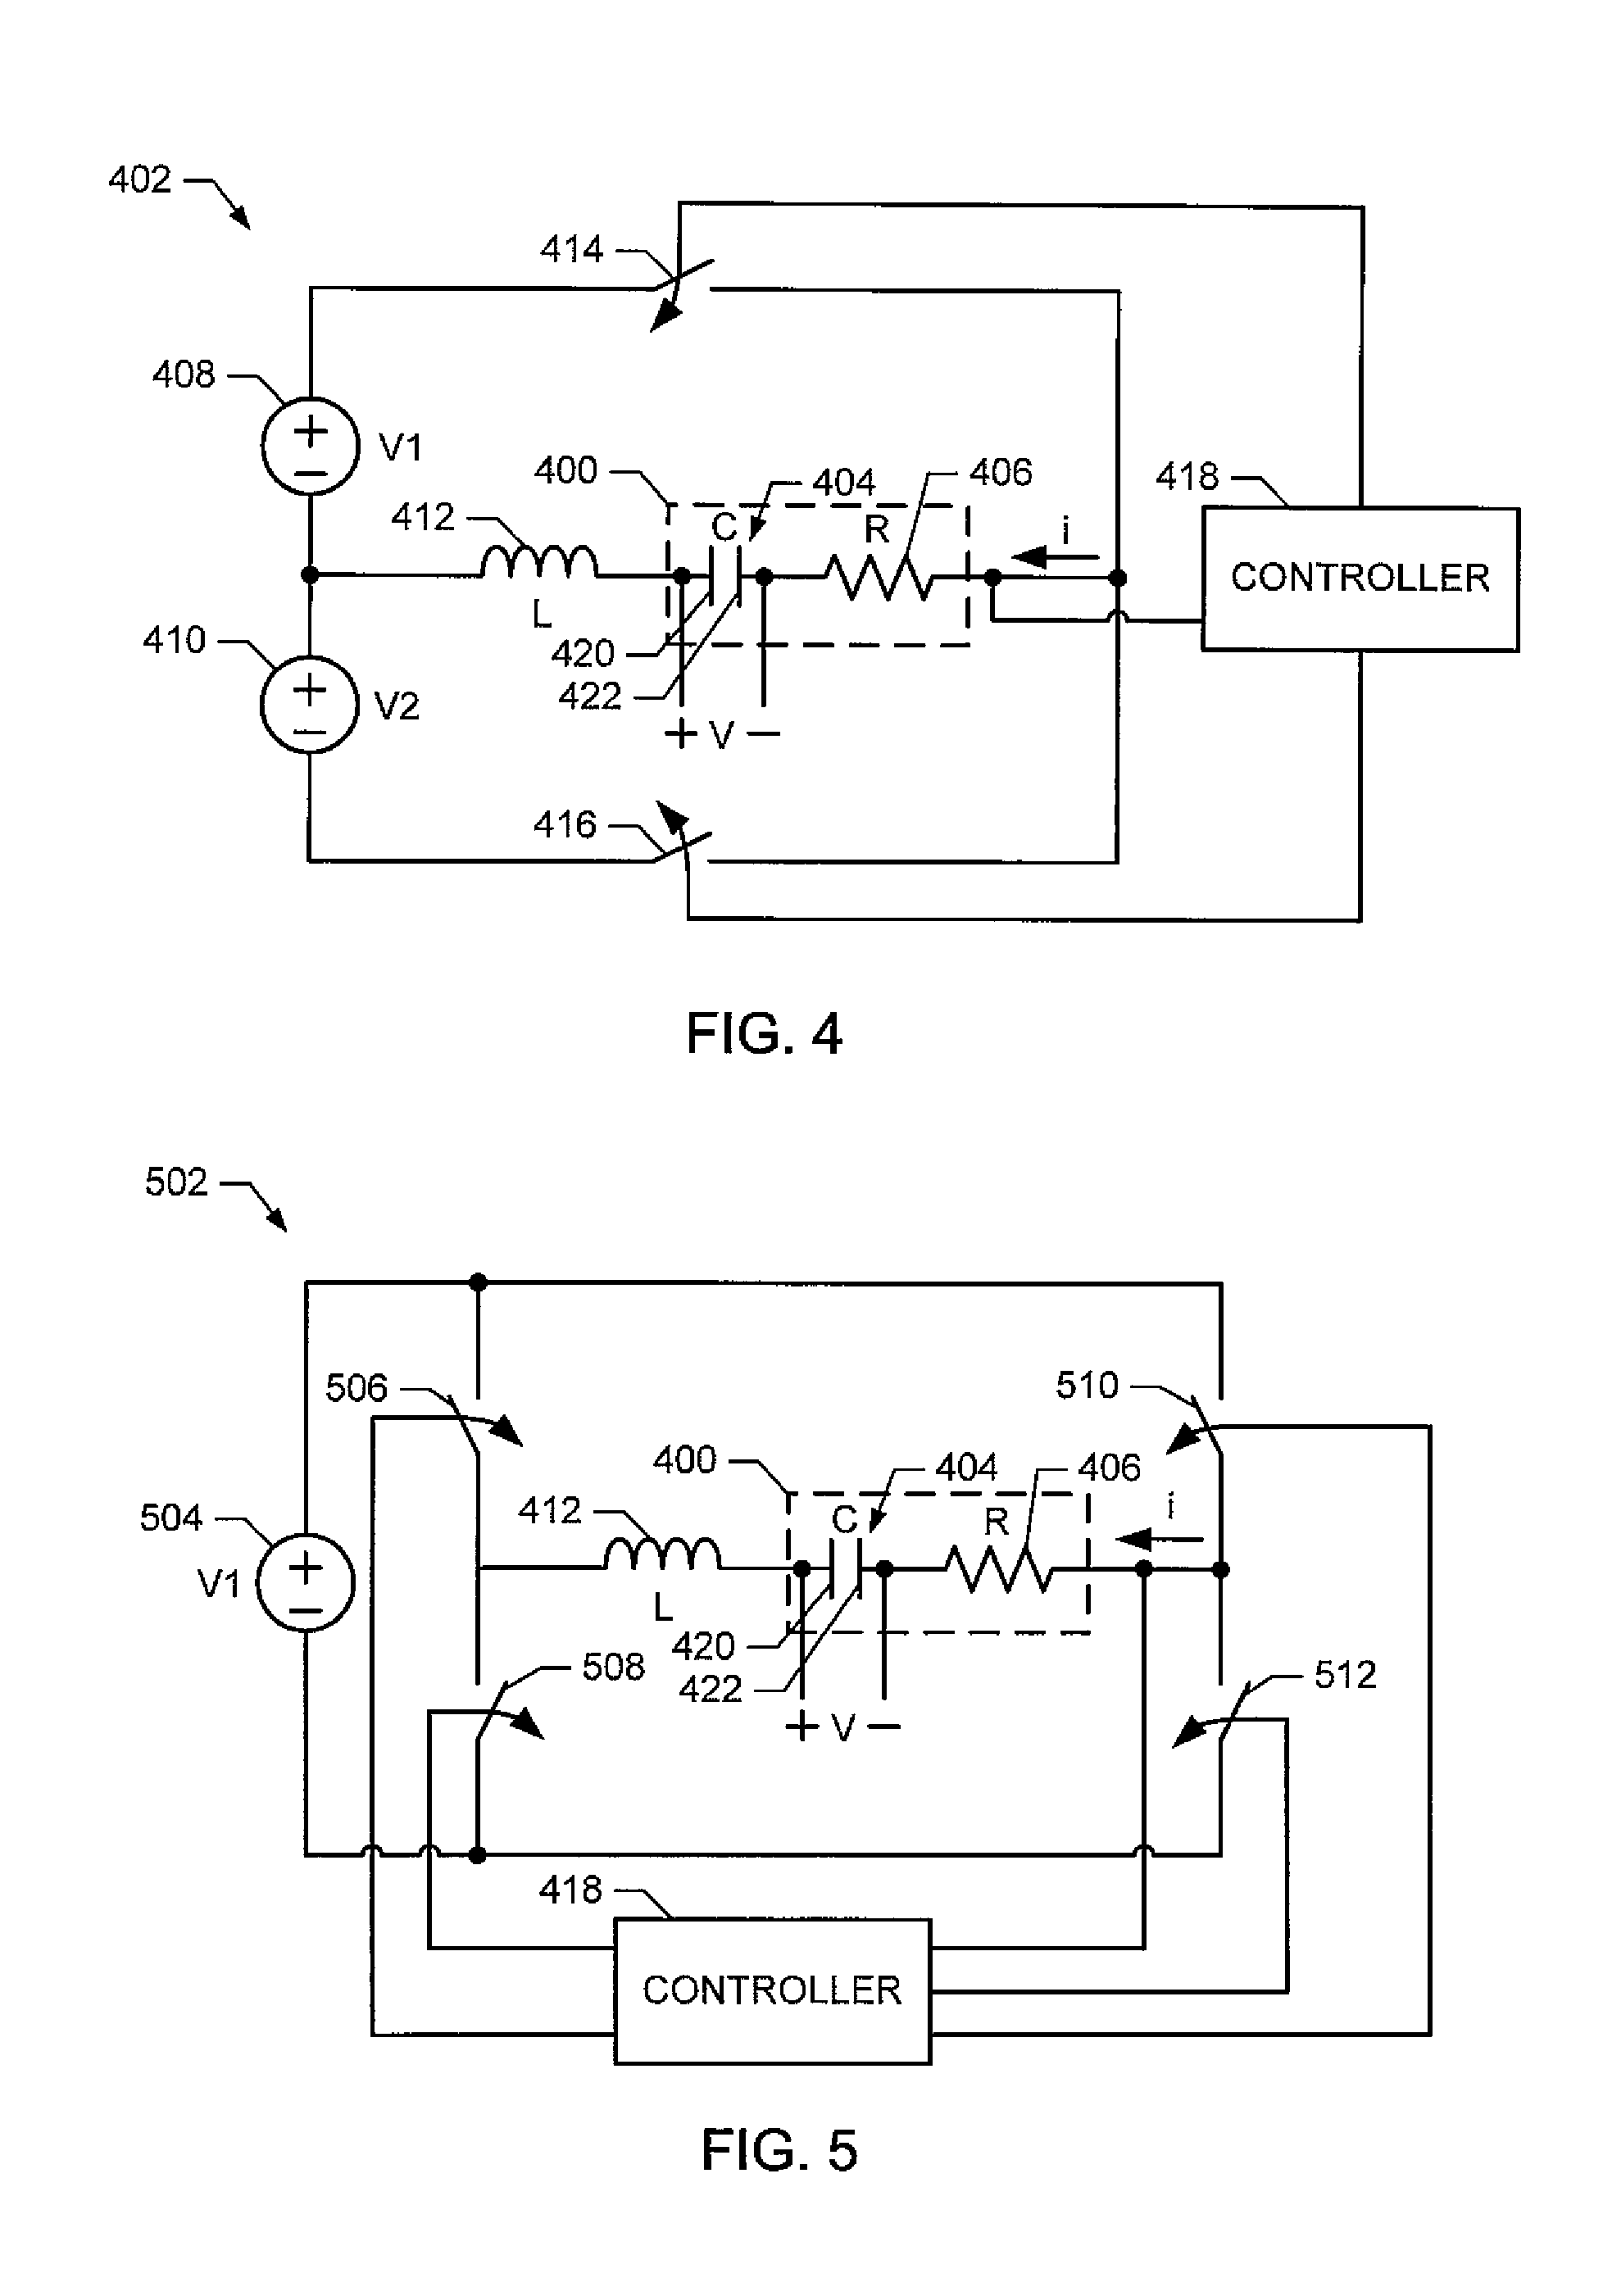 Diagram Further Metal Detector Circuit Furthermore Bose 402 Speakers In Patent Us8630148 Systems Methods And Apparatus To Drive Reactive